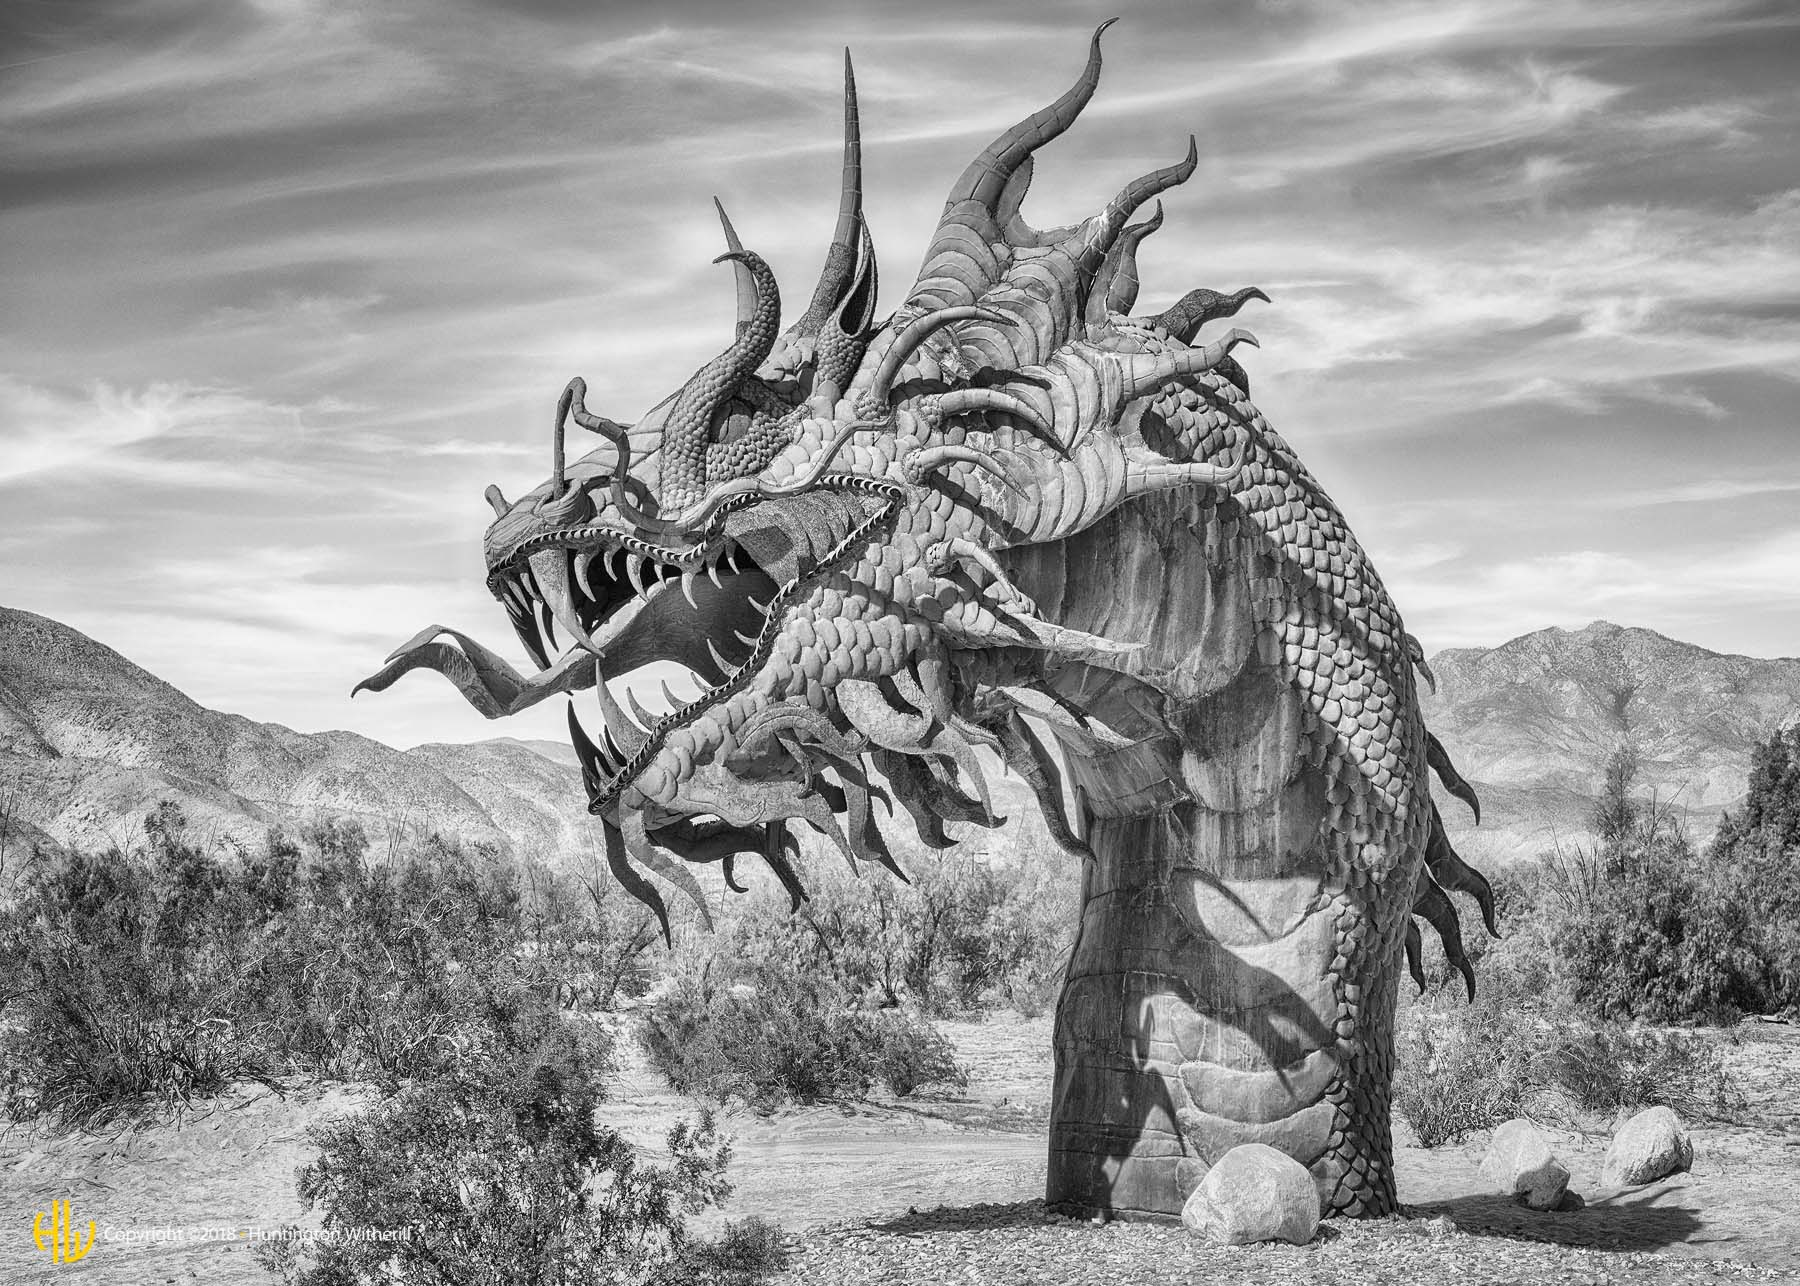 Serpent, Borrego Springs, CA, 2016